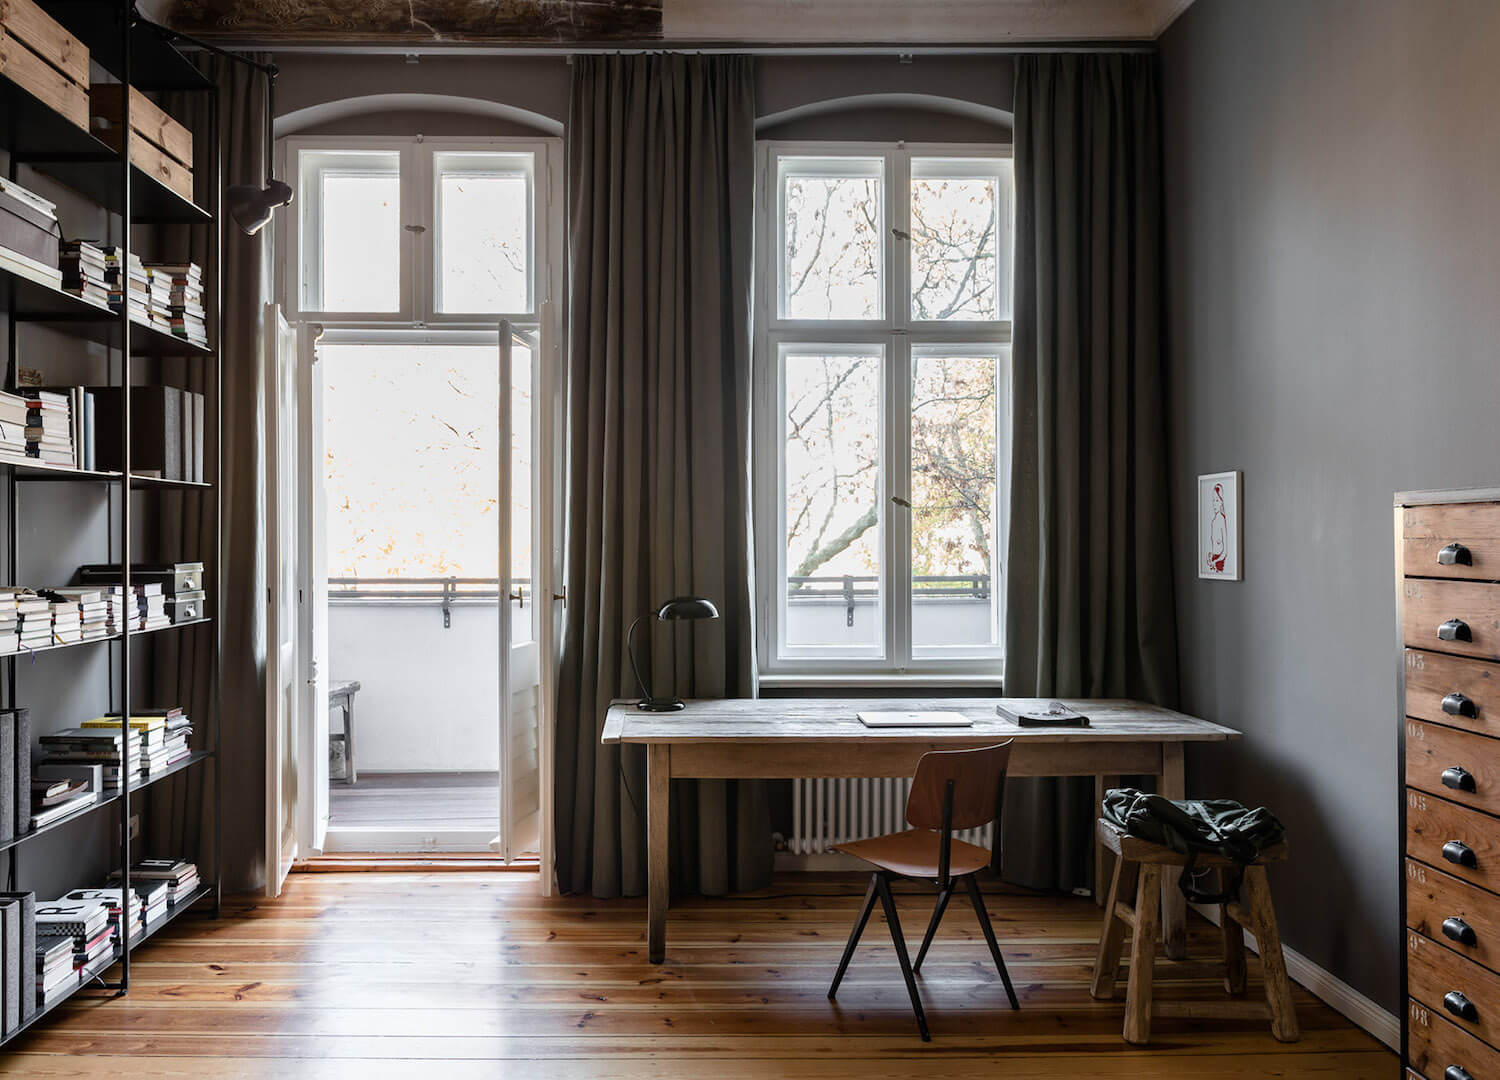 Berlin Apartment From The 19th Century   Via Coco Lapine Design ...